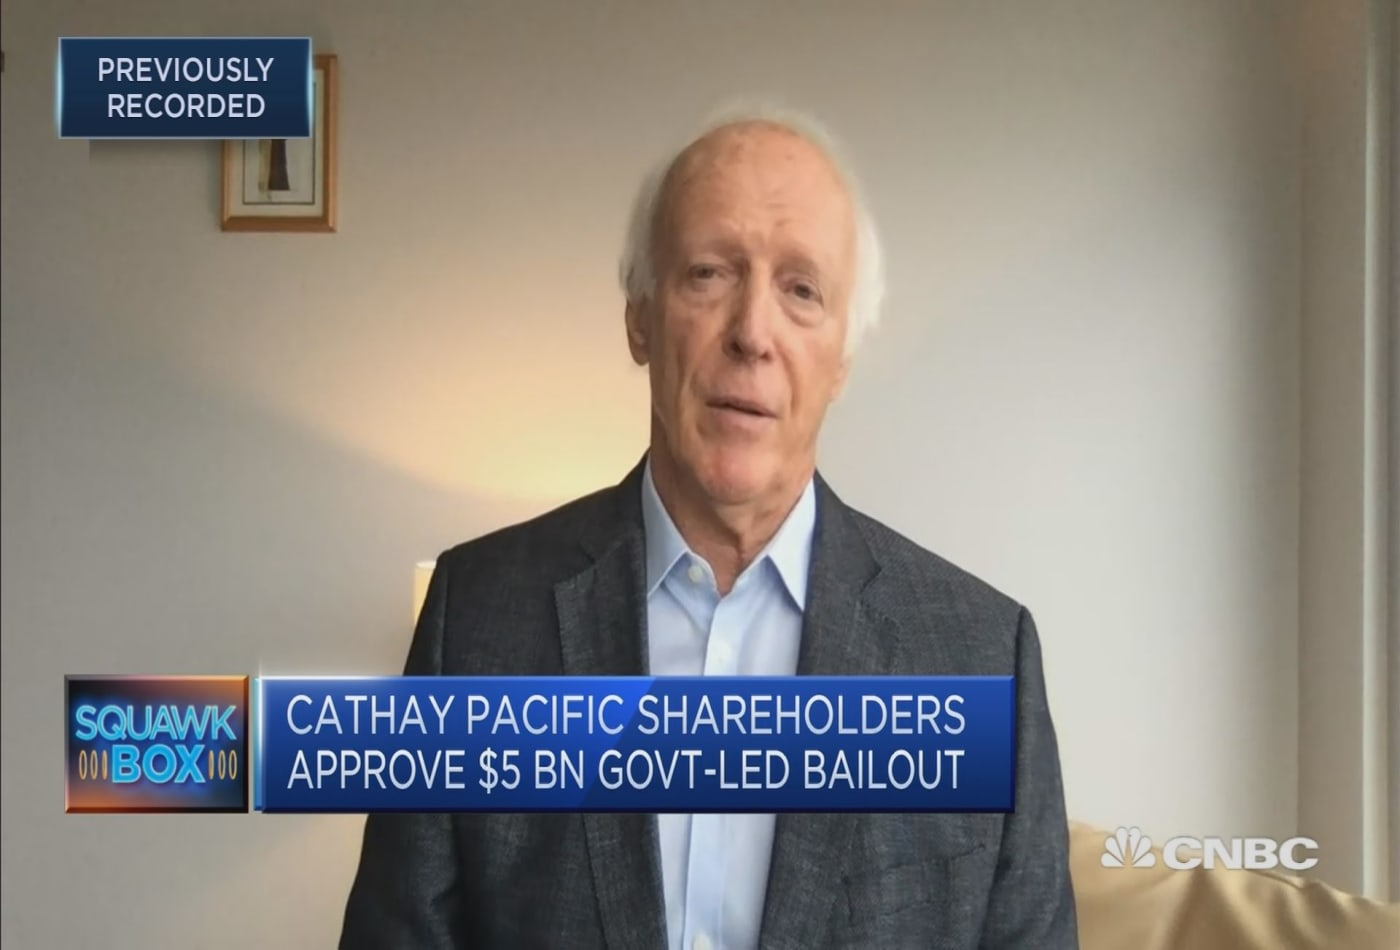 Cathay Pacific's government bailout may not be enough: Expert